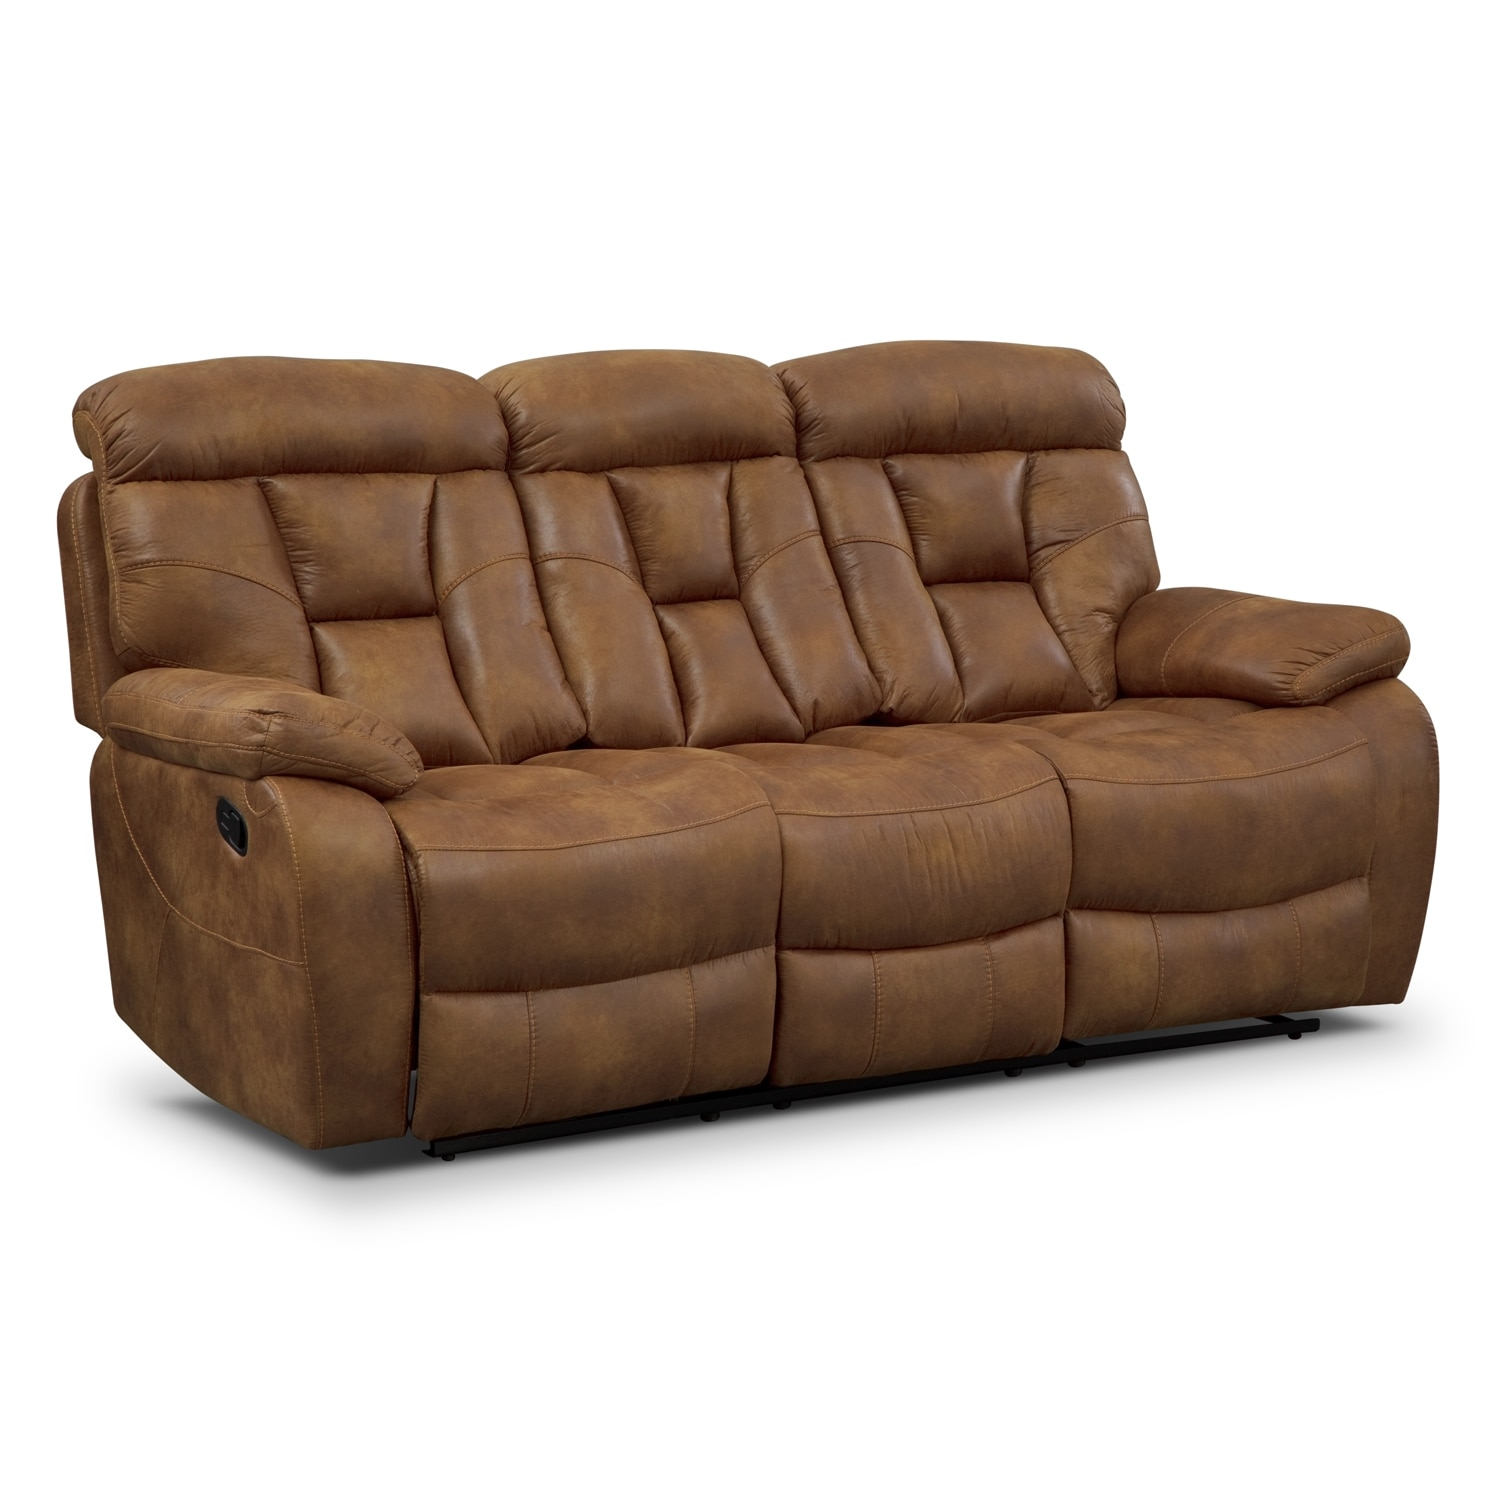 Dakota ii reclining sofa value city furniture Loveseats that recline